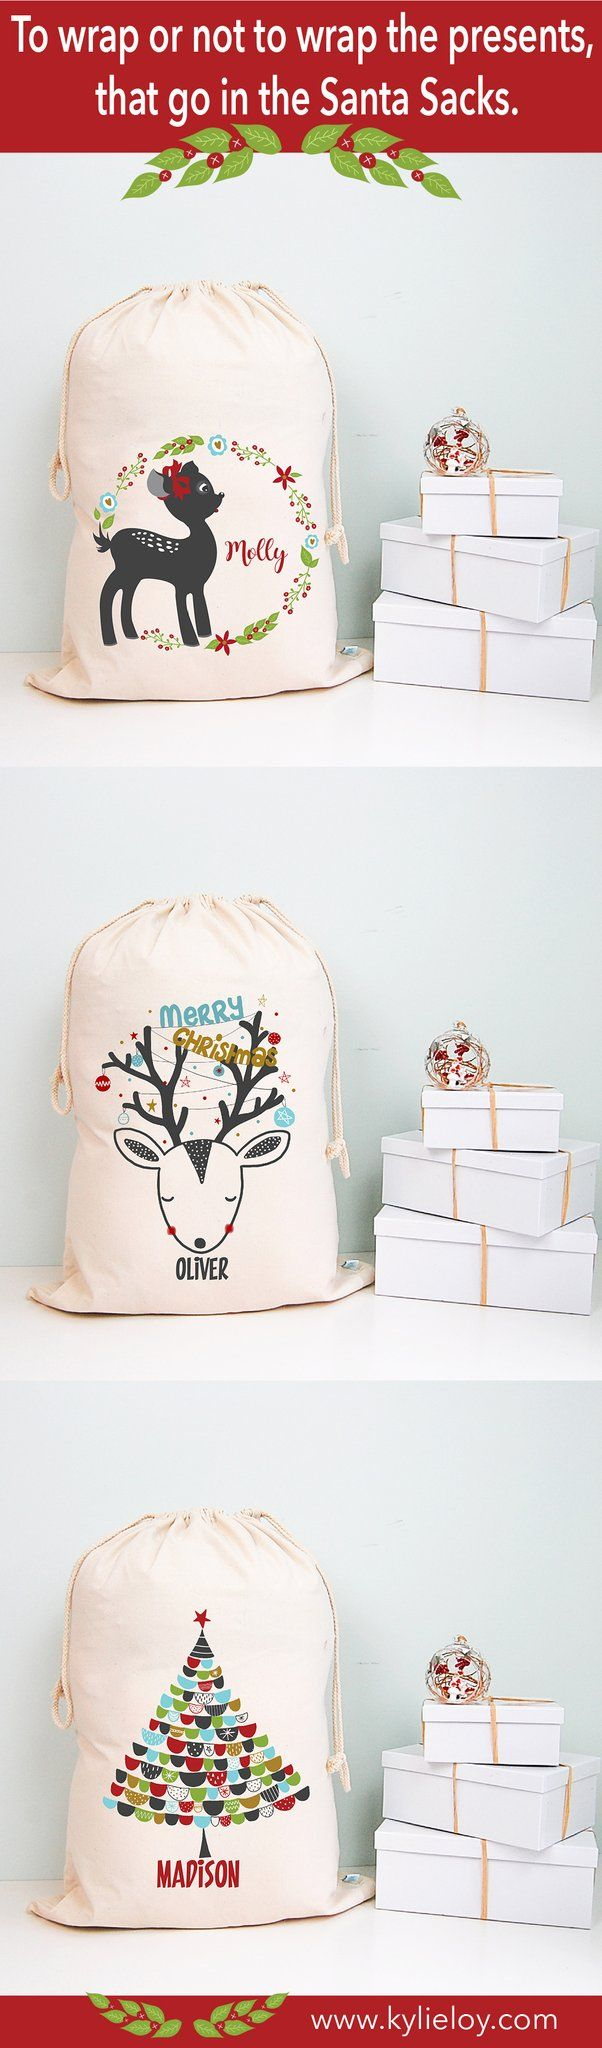 To wrap or not to wrap the presents that go in the Santa Sacks. Personalised Santa Sacks